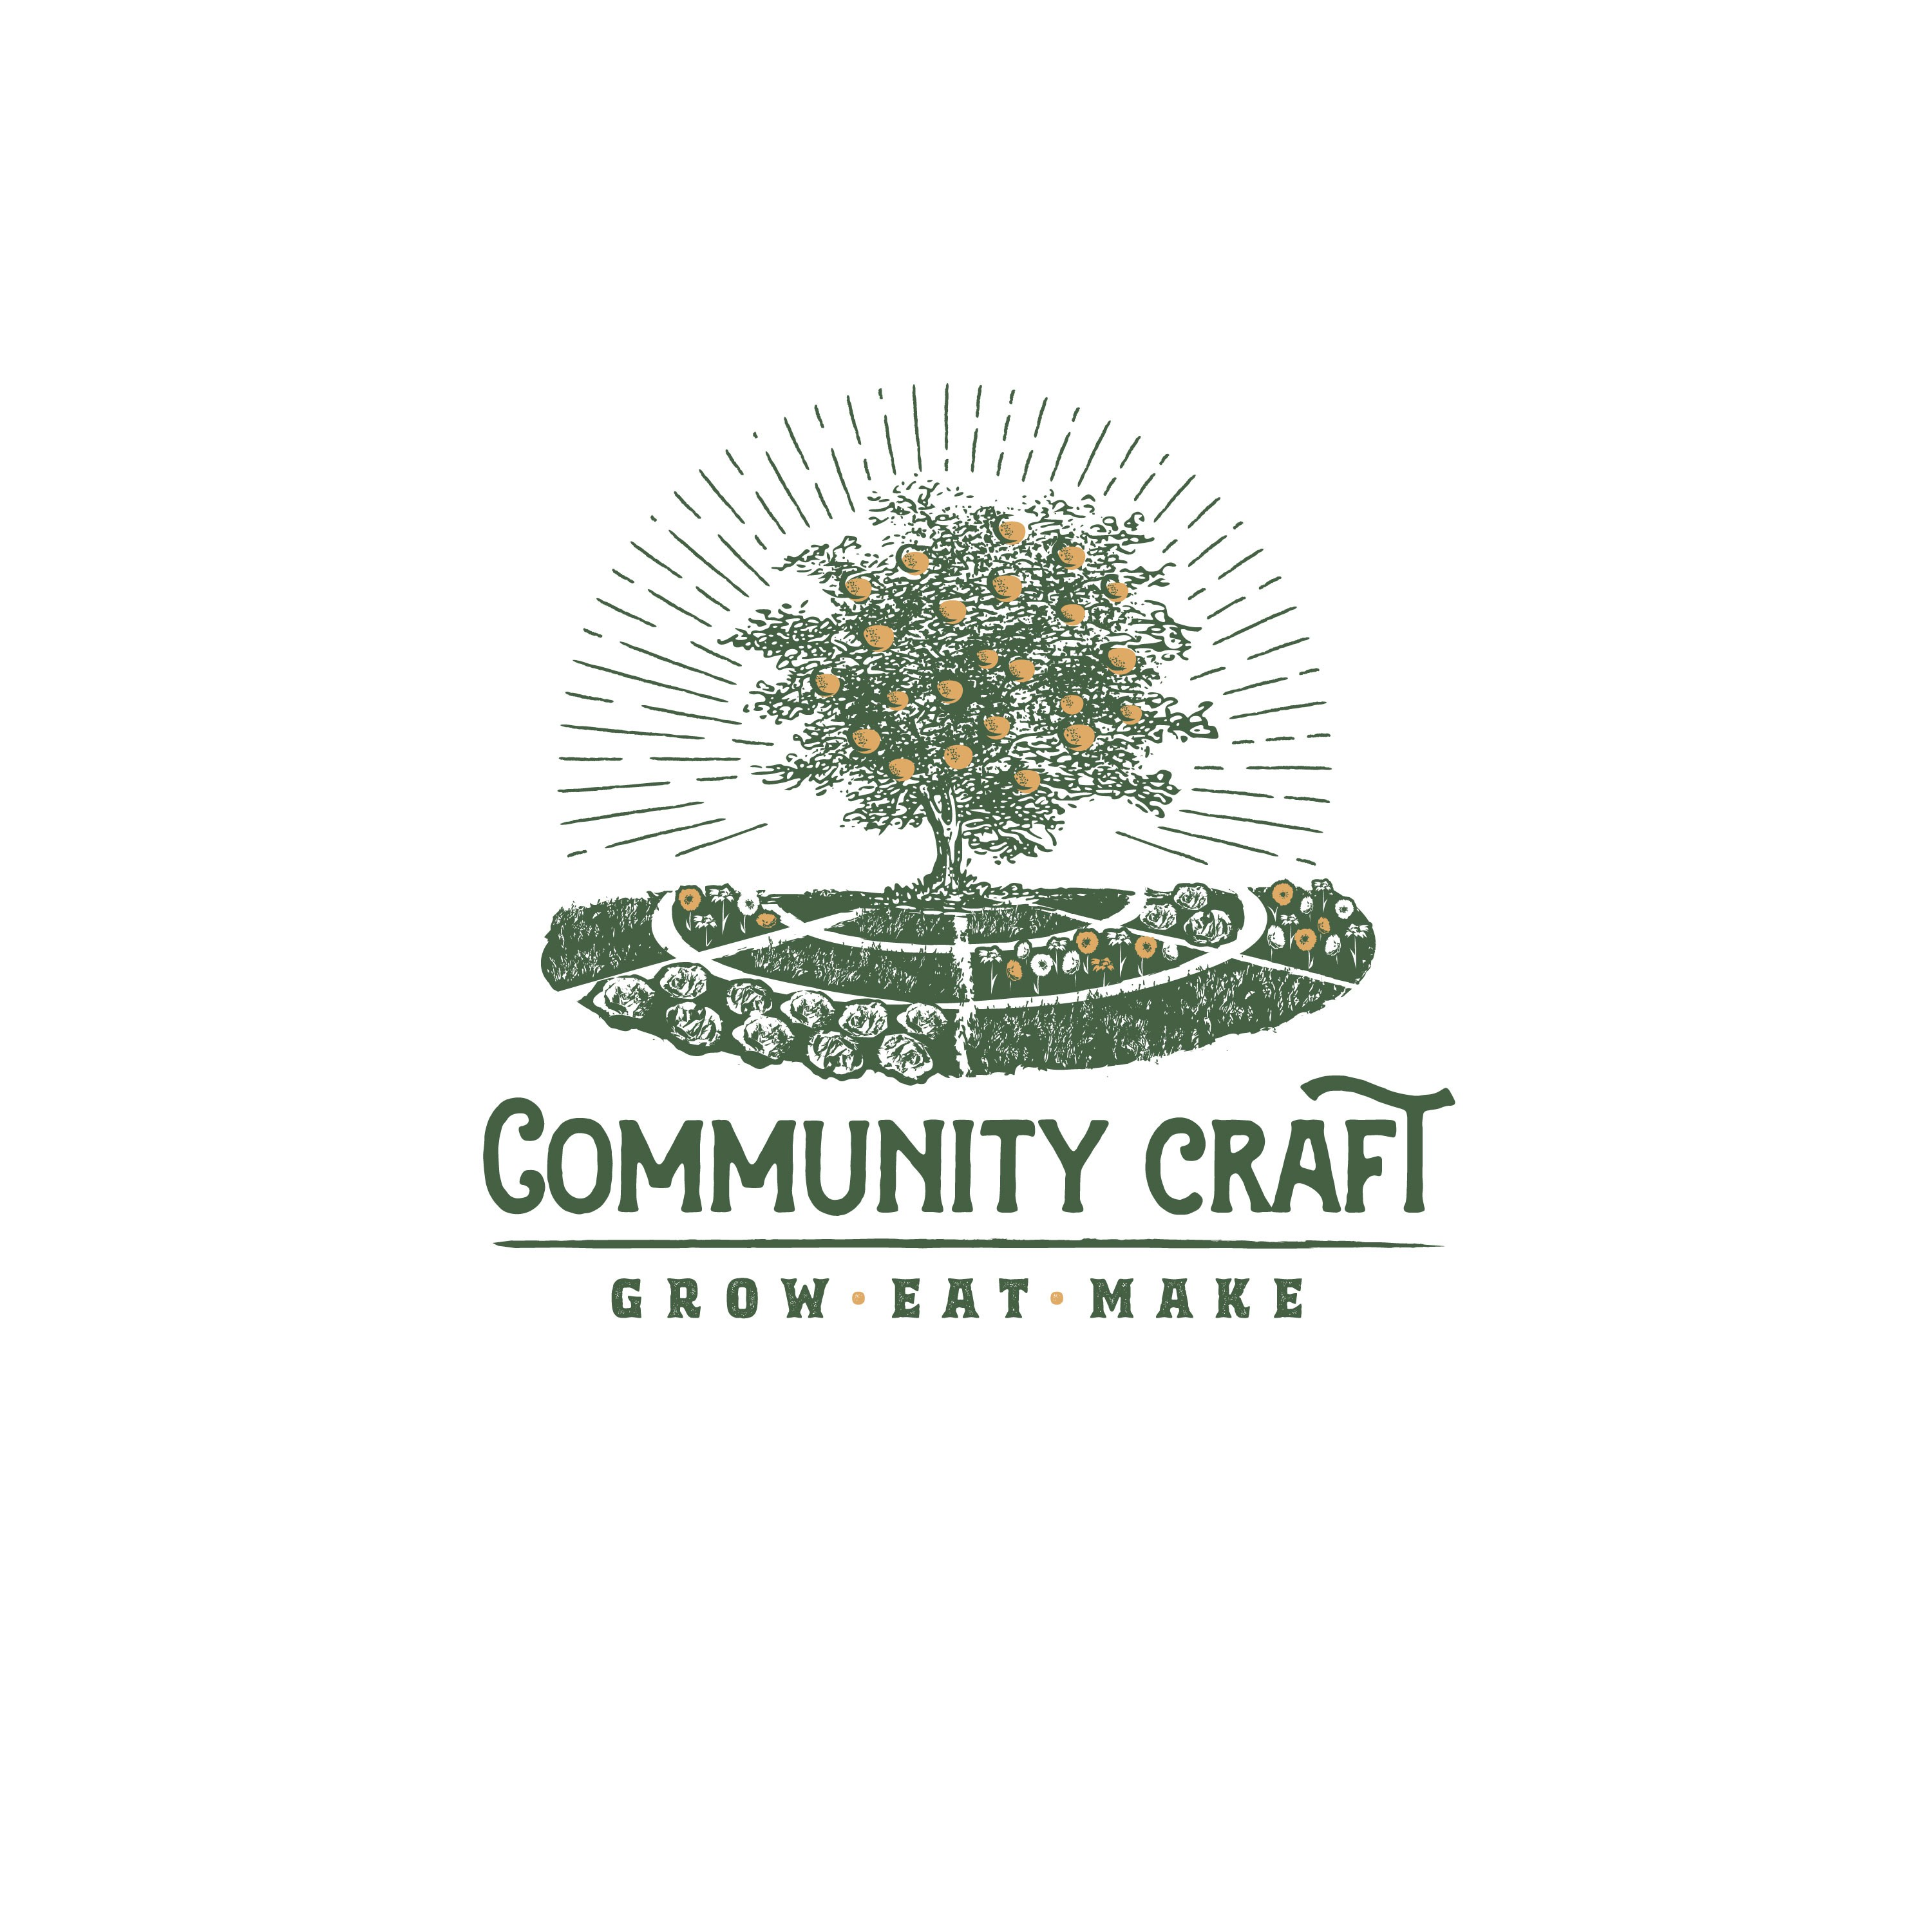 Community Craft - be one of our community of makers!